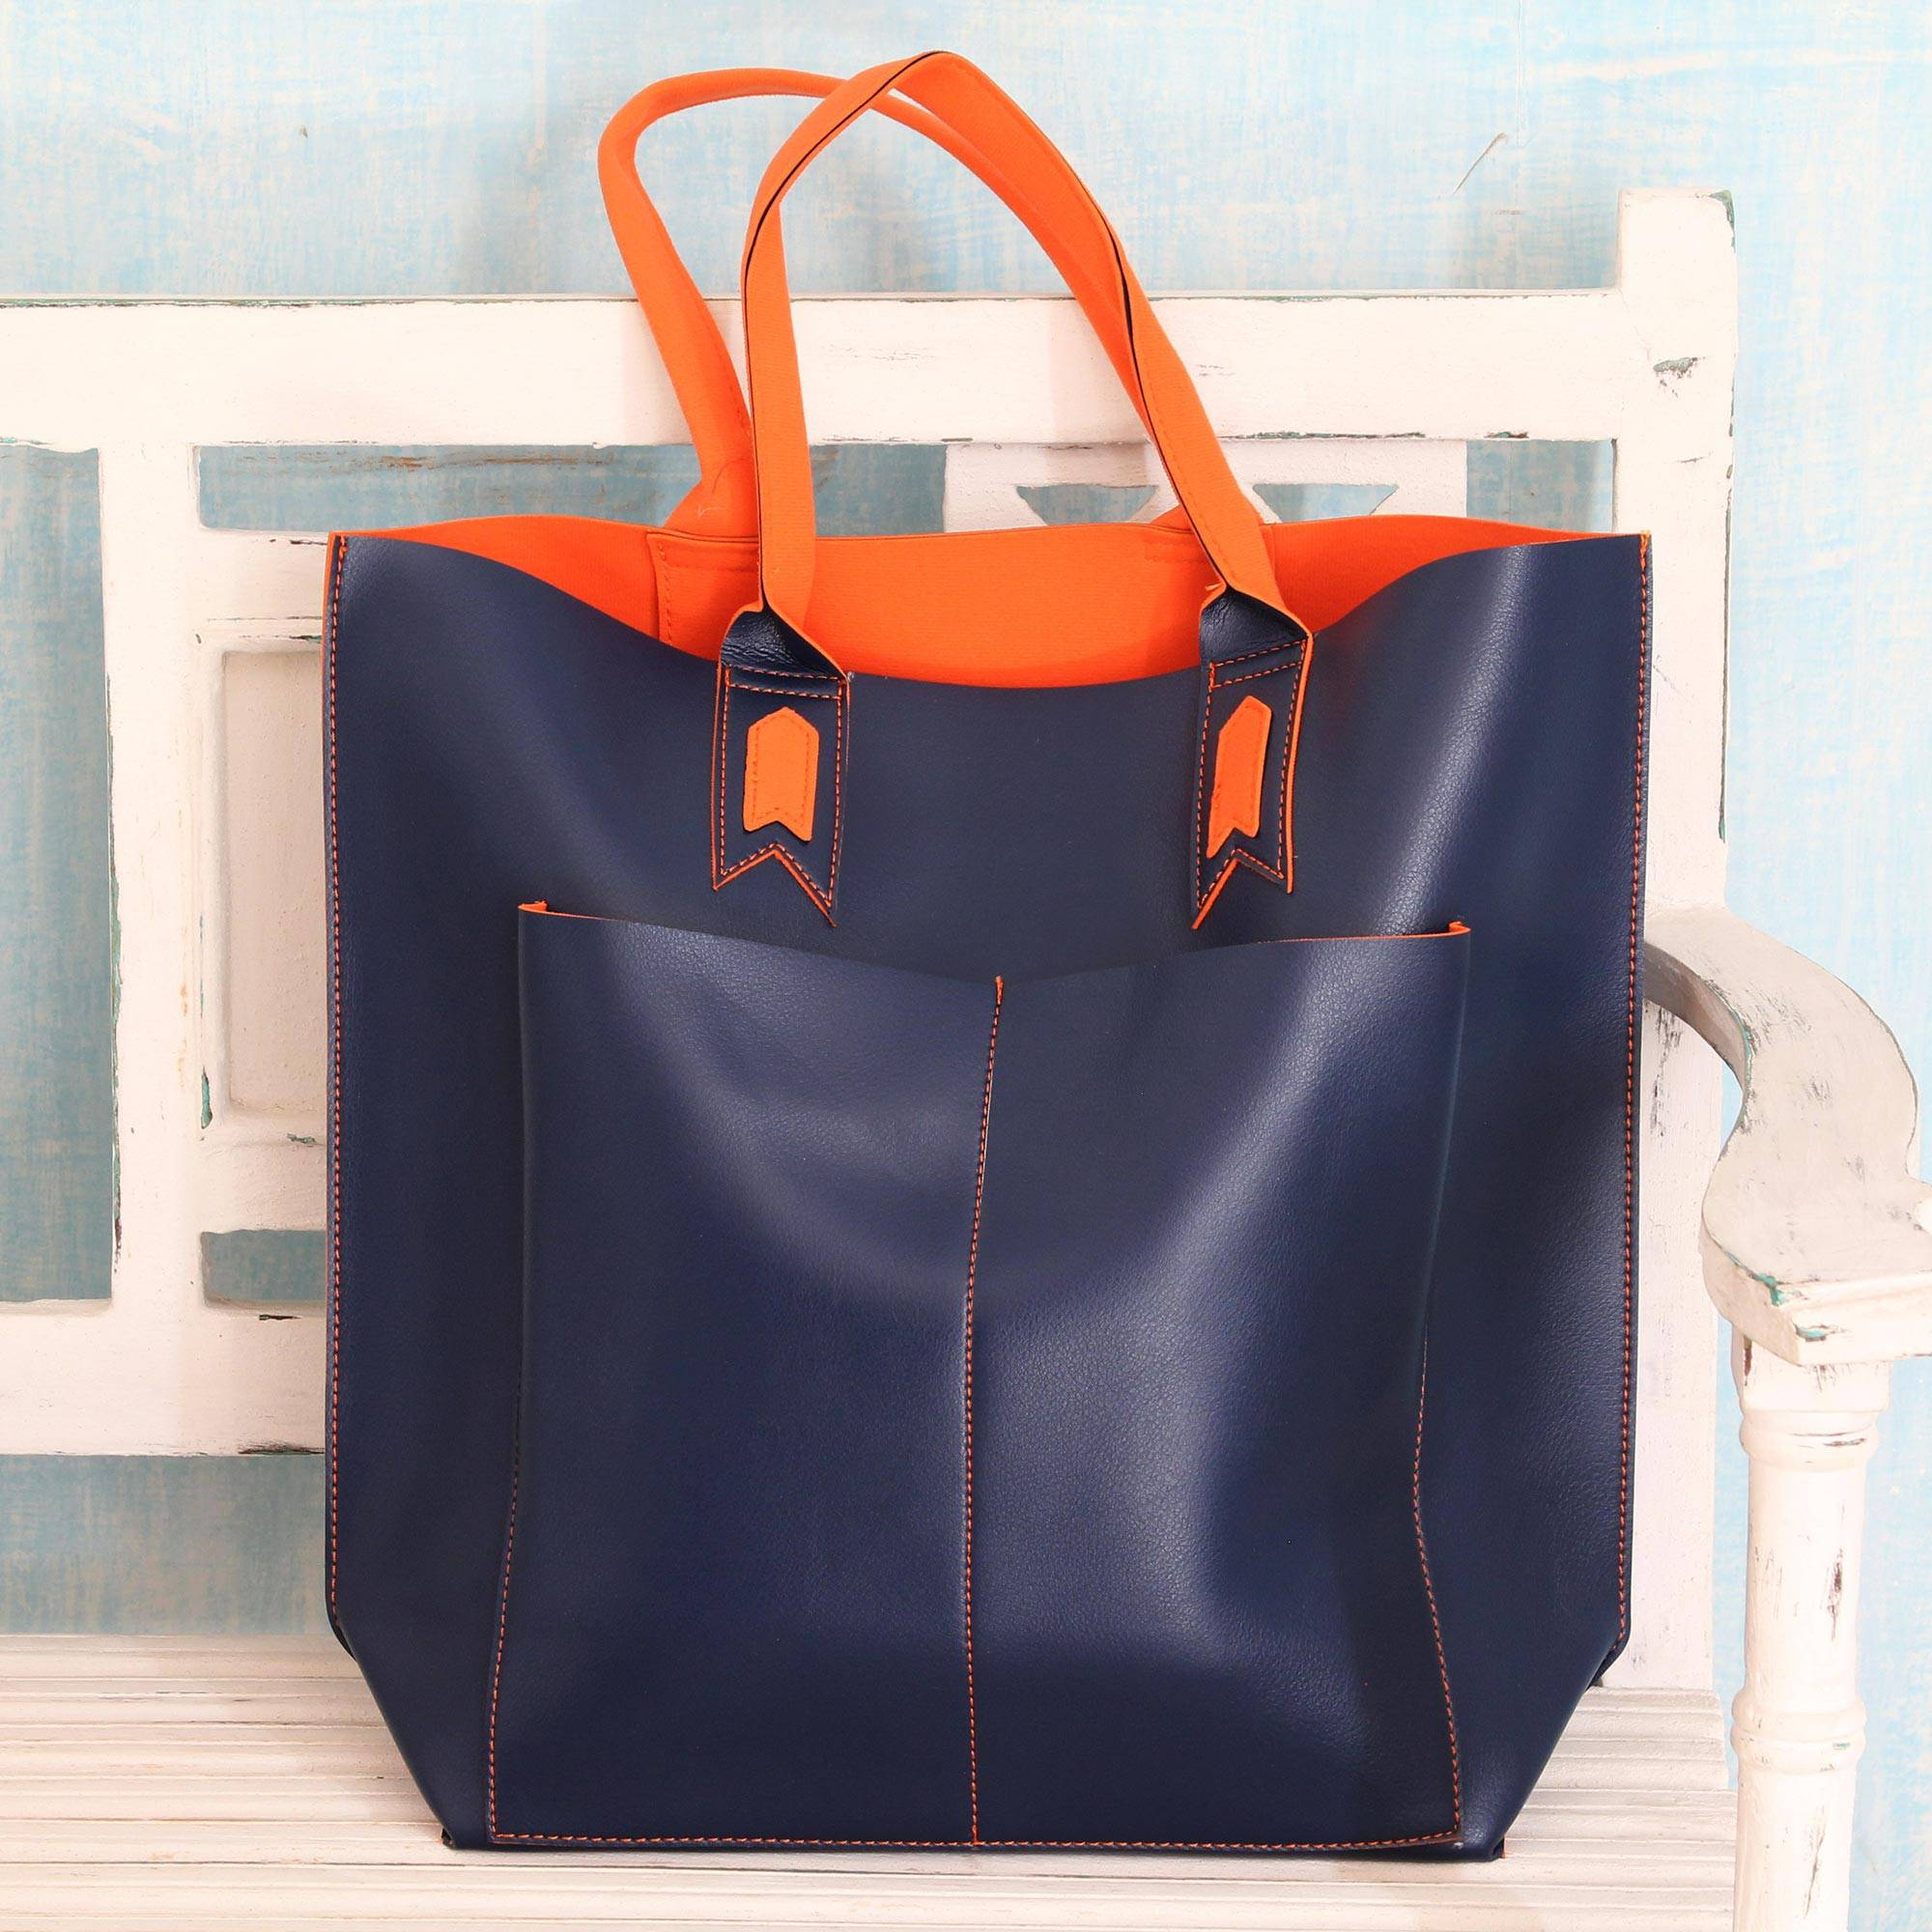 e9d4051ee3be Handcrafted Navy Blue Tote Bag With Orange Accents Versatile